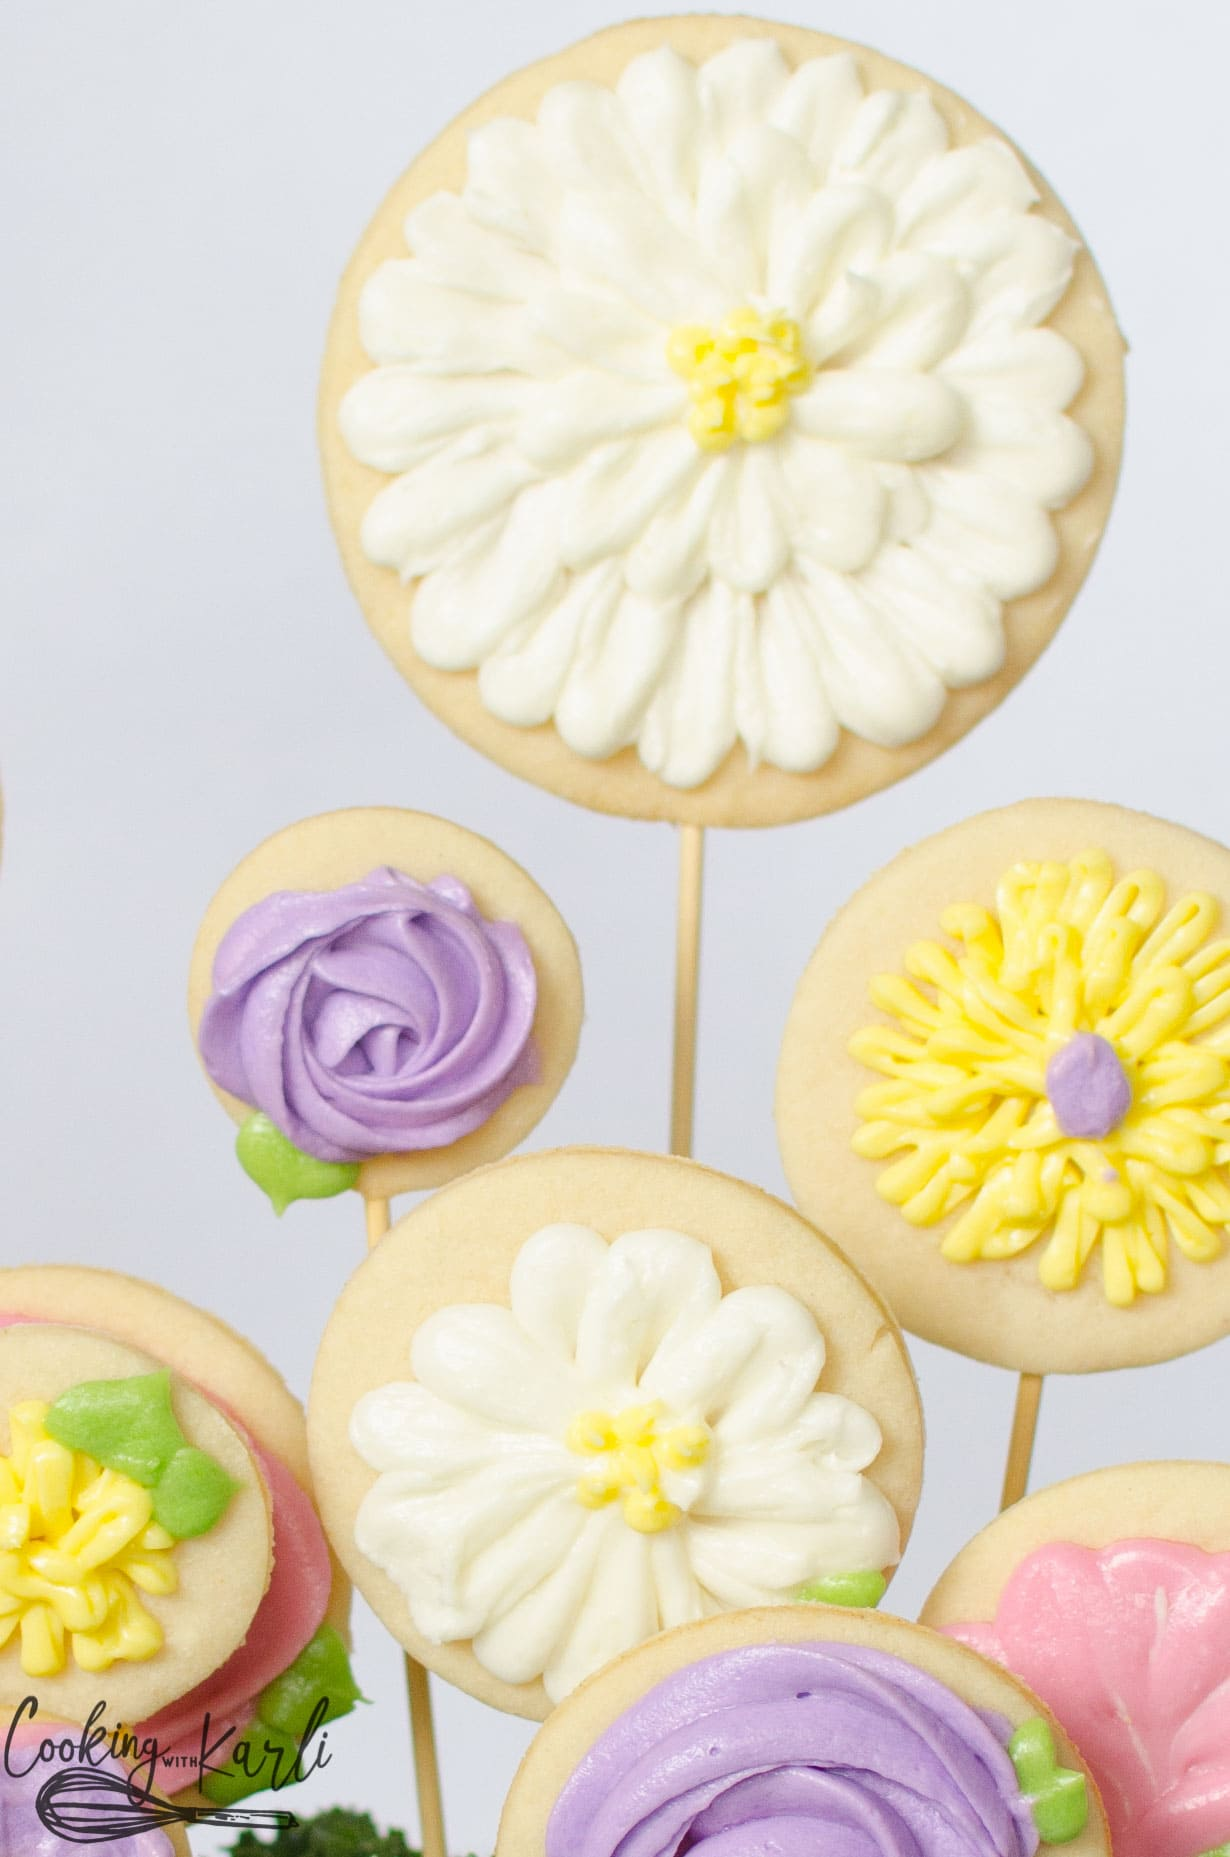 Sugar cookies baked onto kabob sticks to make a flower garden gift.